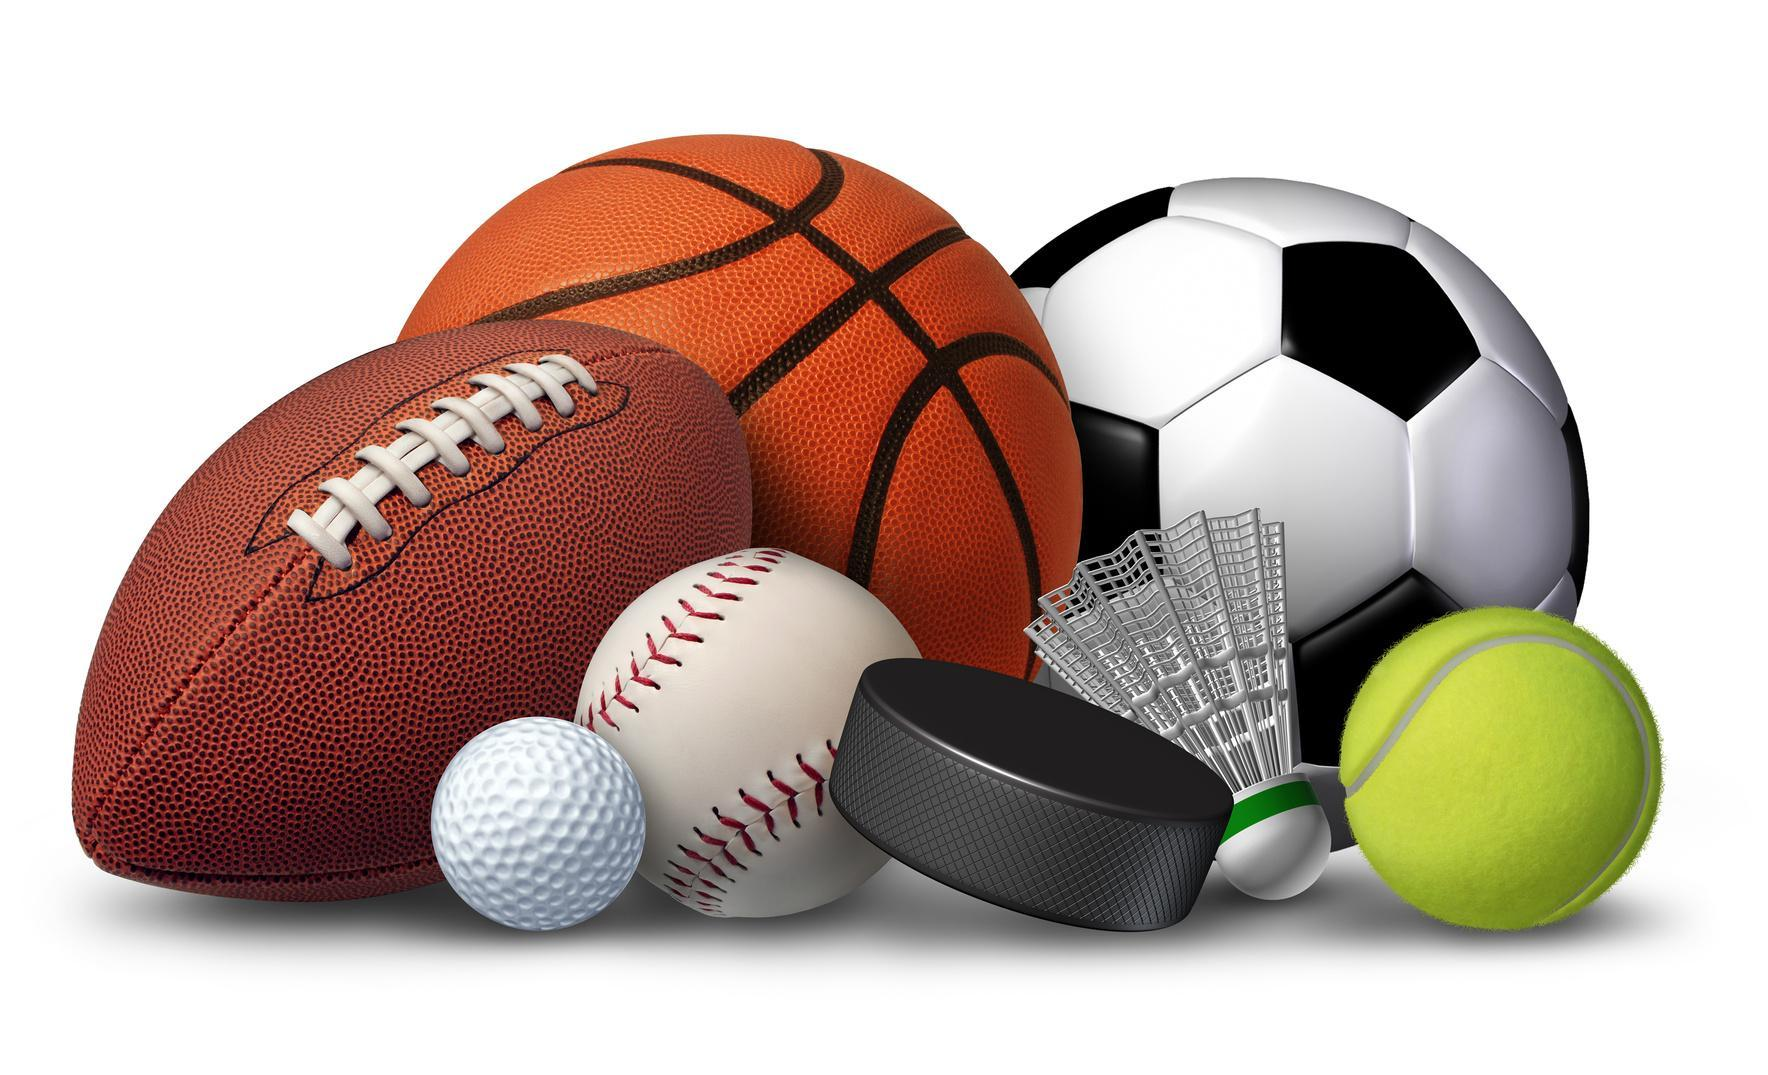 What sports do you like to watch?